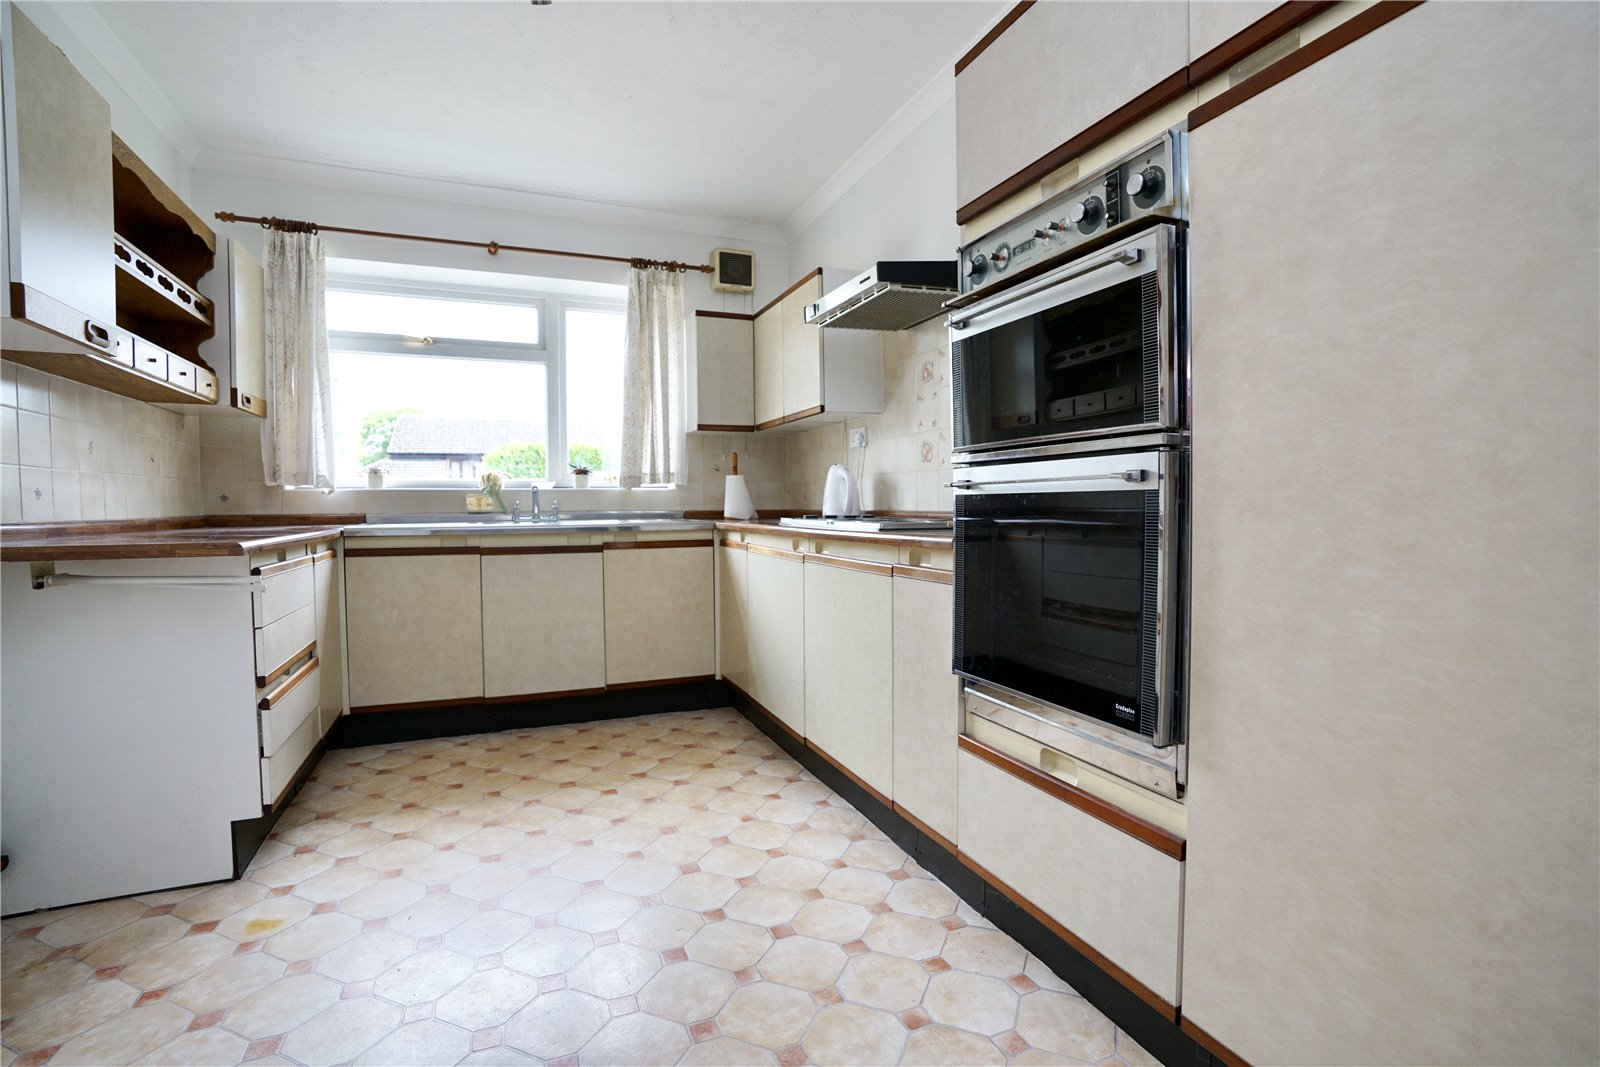 3 bed house for sale in Great North Road, Eaton Socon  - Property Image 2